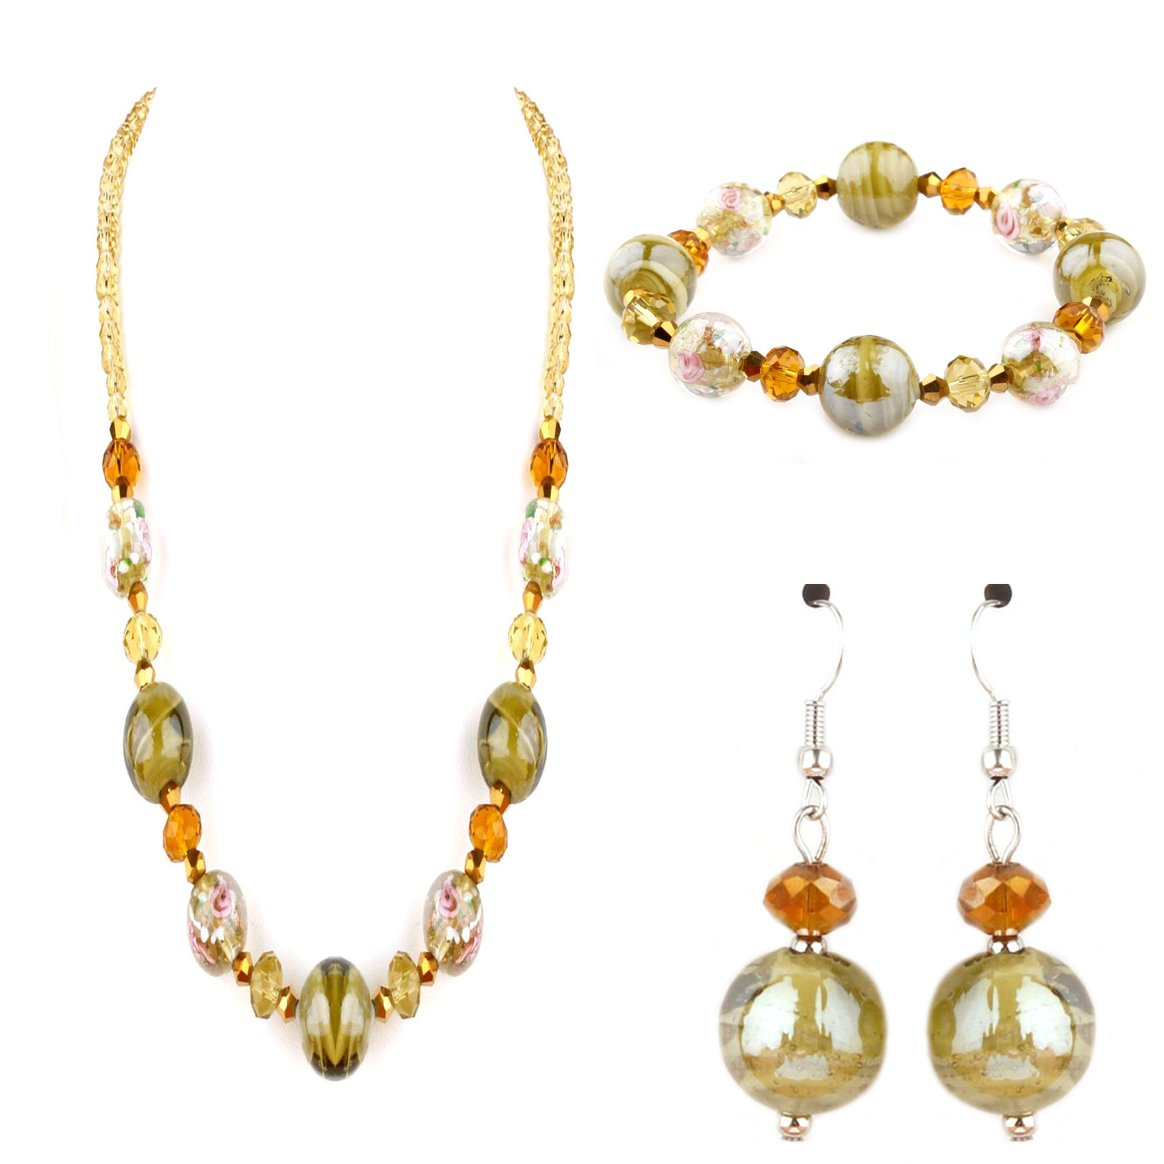 Murano Glass Olive Francesca Collection Set (Bracelet, Necklace and Earrings)